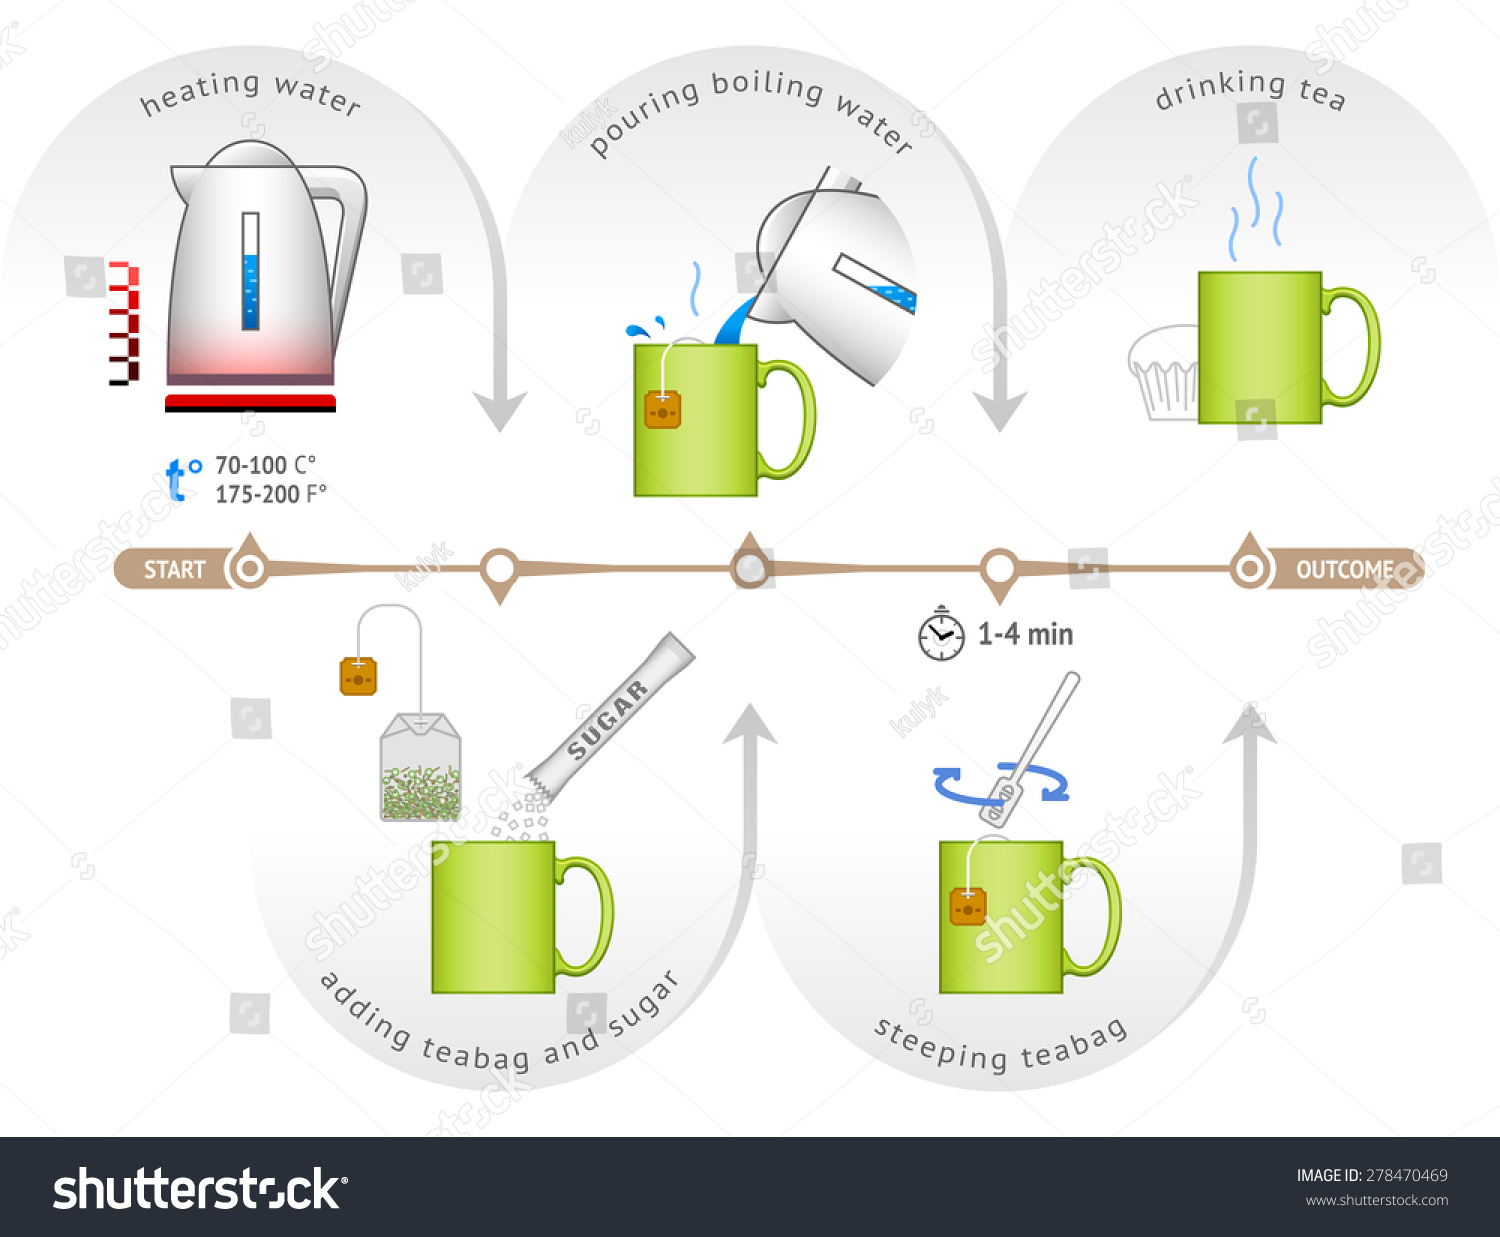 infographic for process of brewing teabag step by step instructions make cup of tea